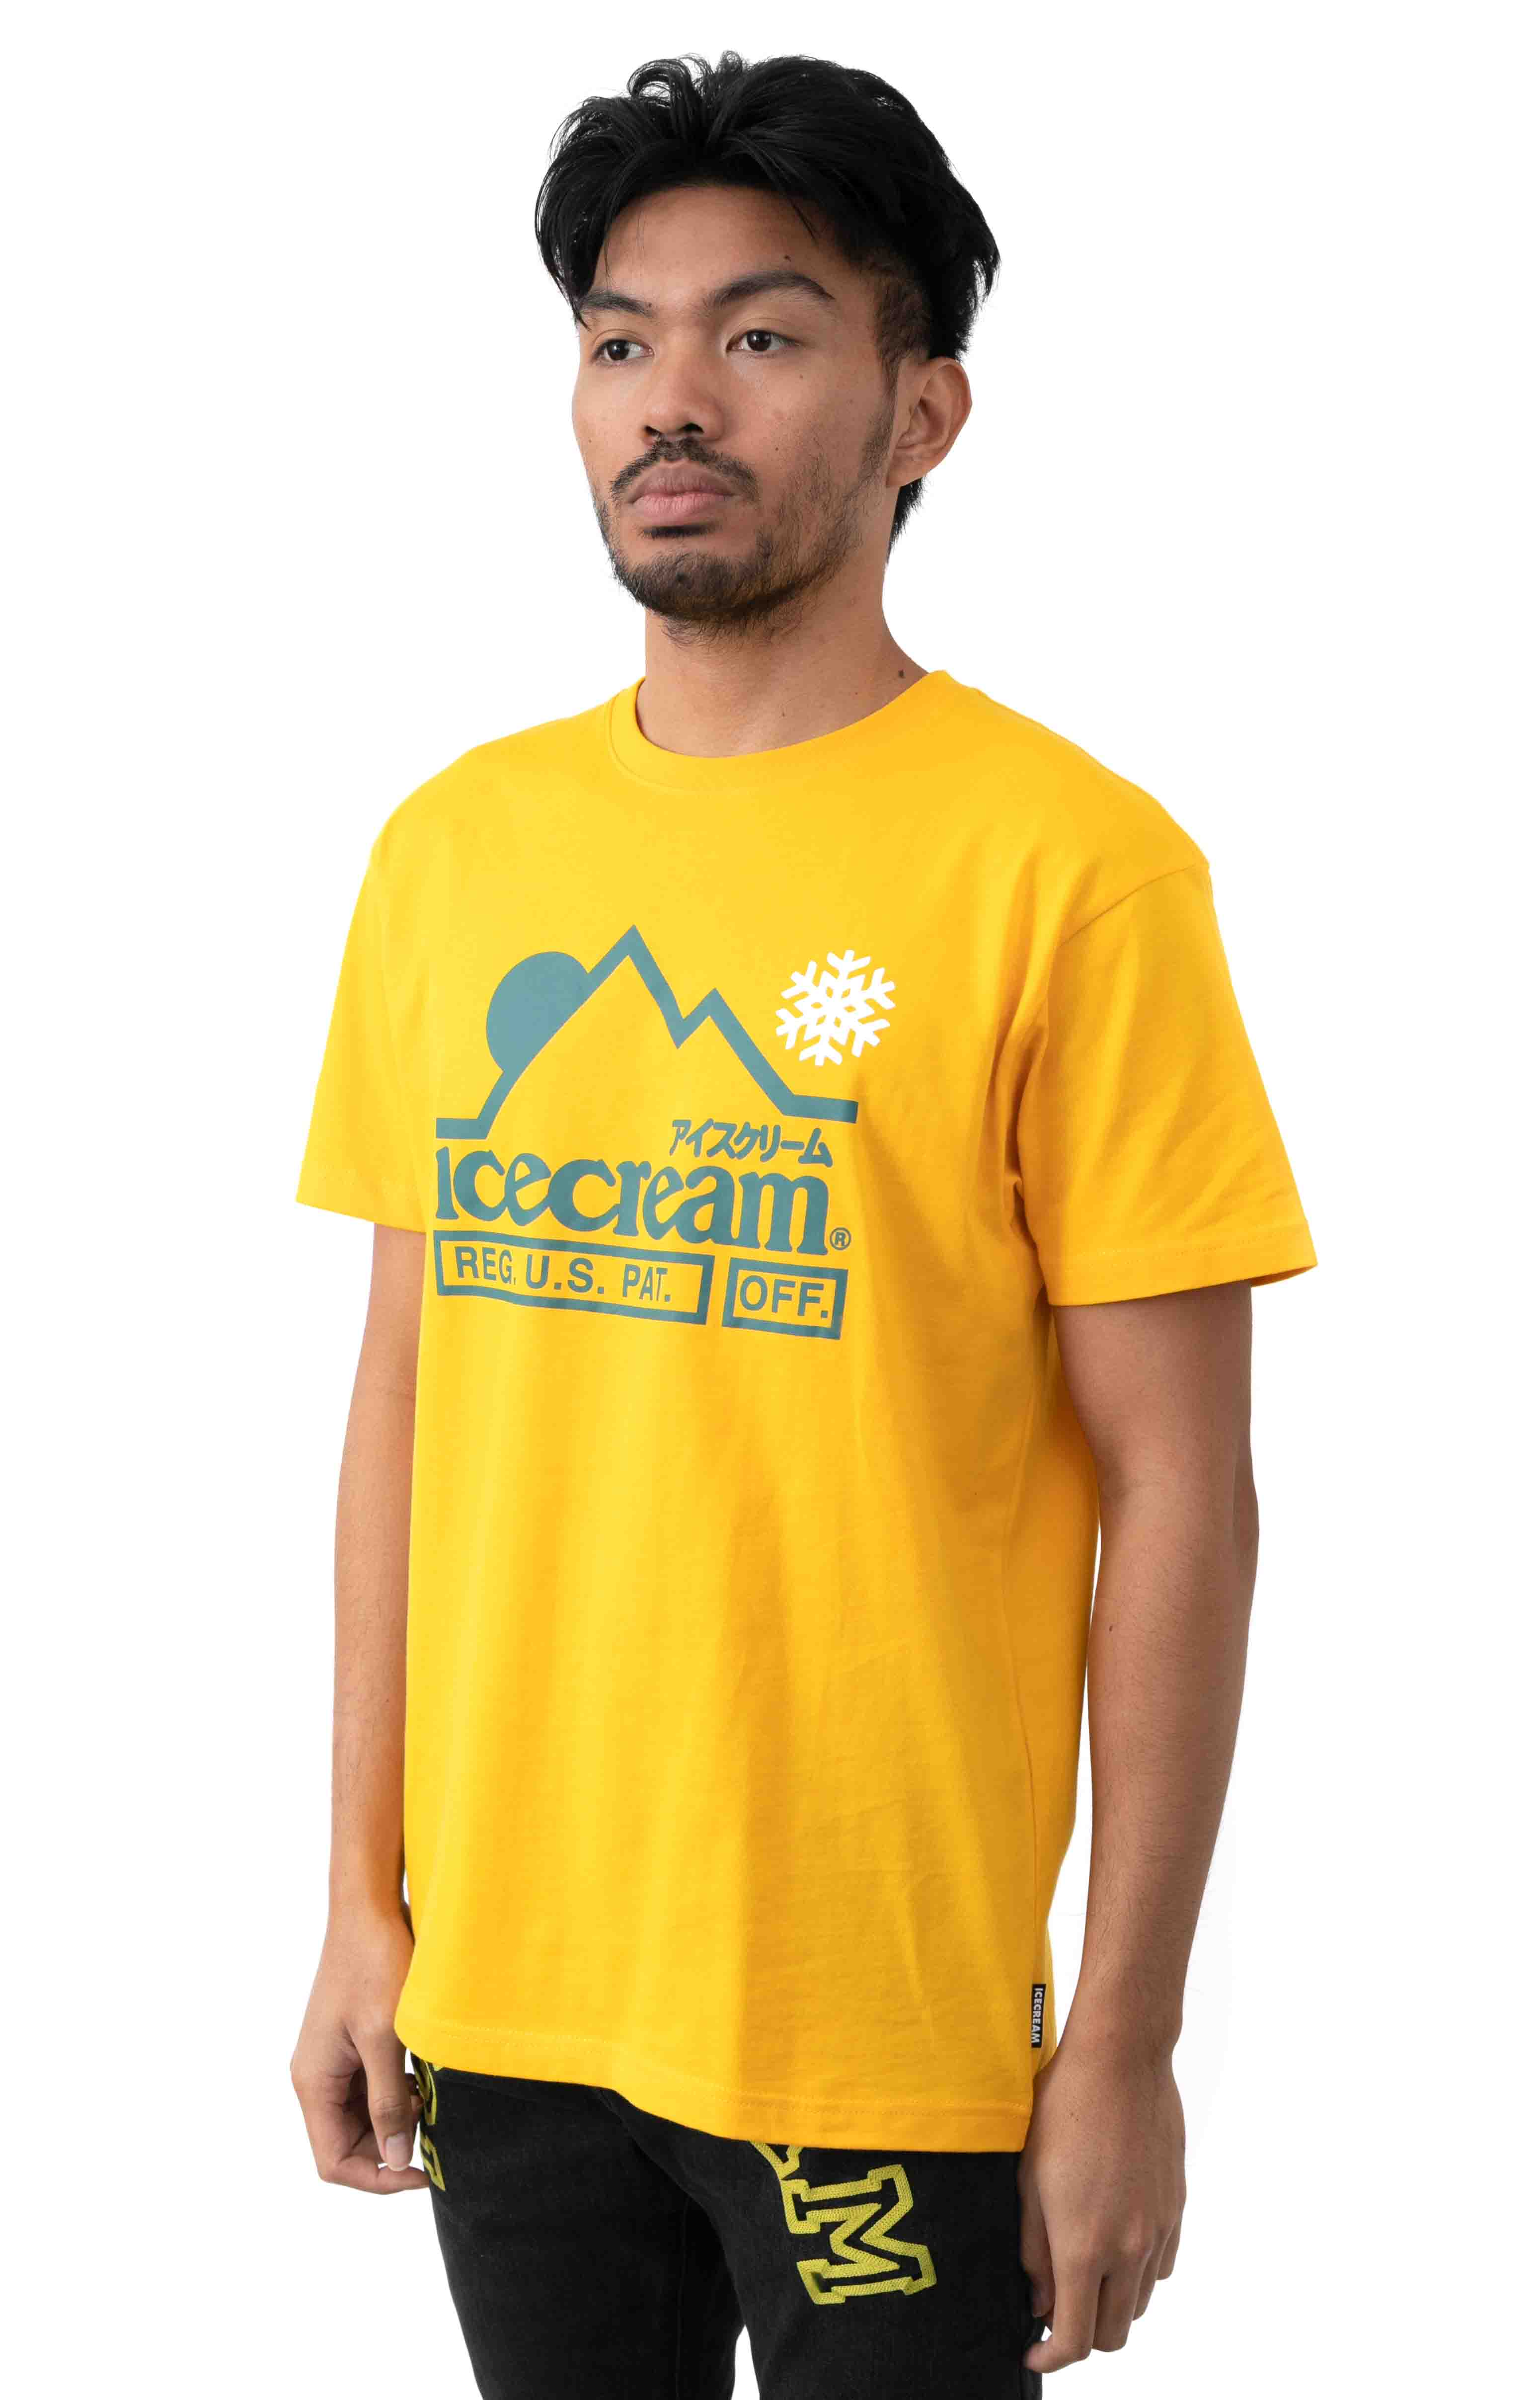 At The Top T-Shirt - Spectra Yellow 2